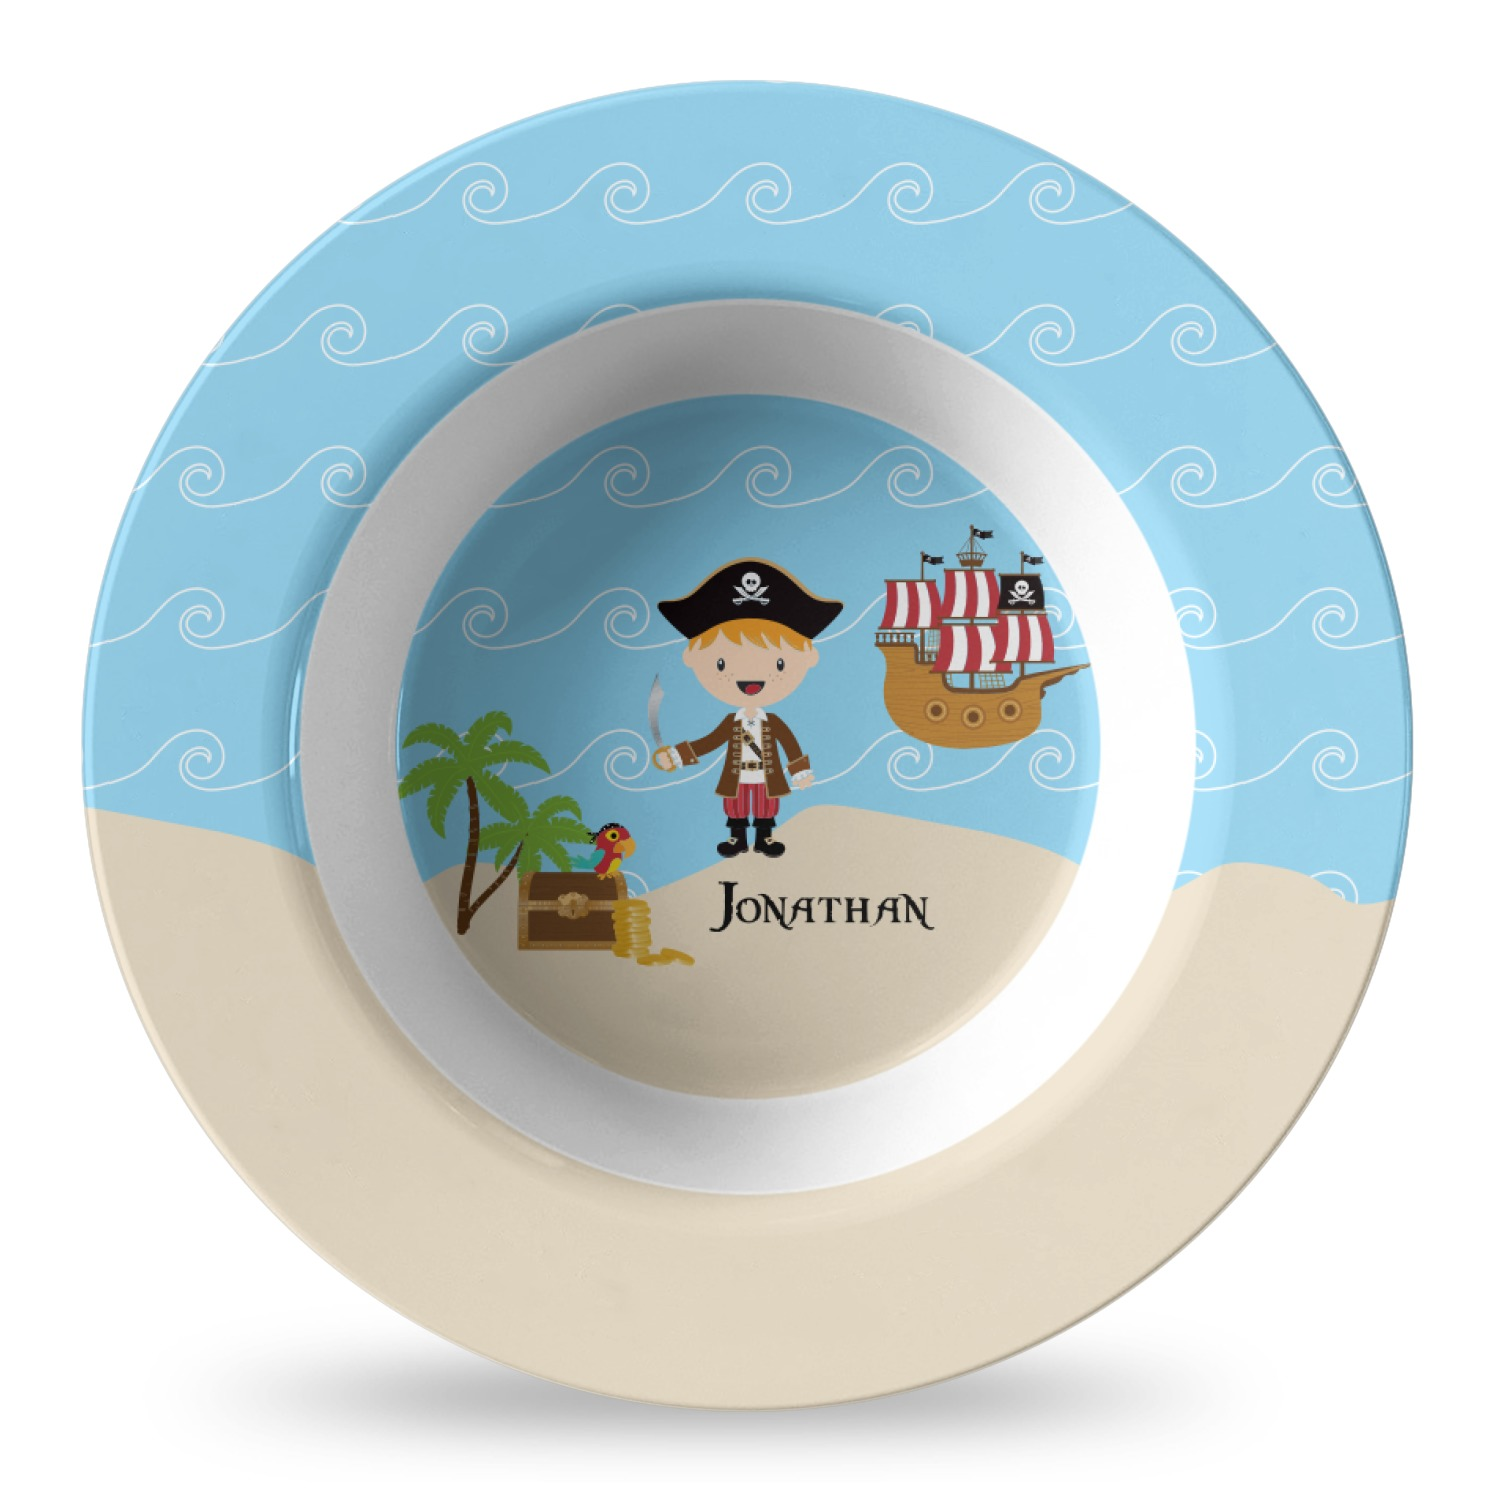 Pirate Scene Plastic Bowl Microwave Safe Composite Polymer Personalized